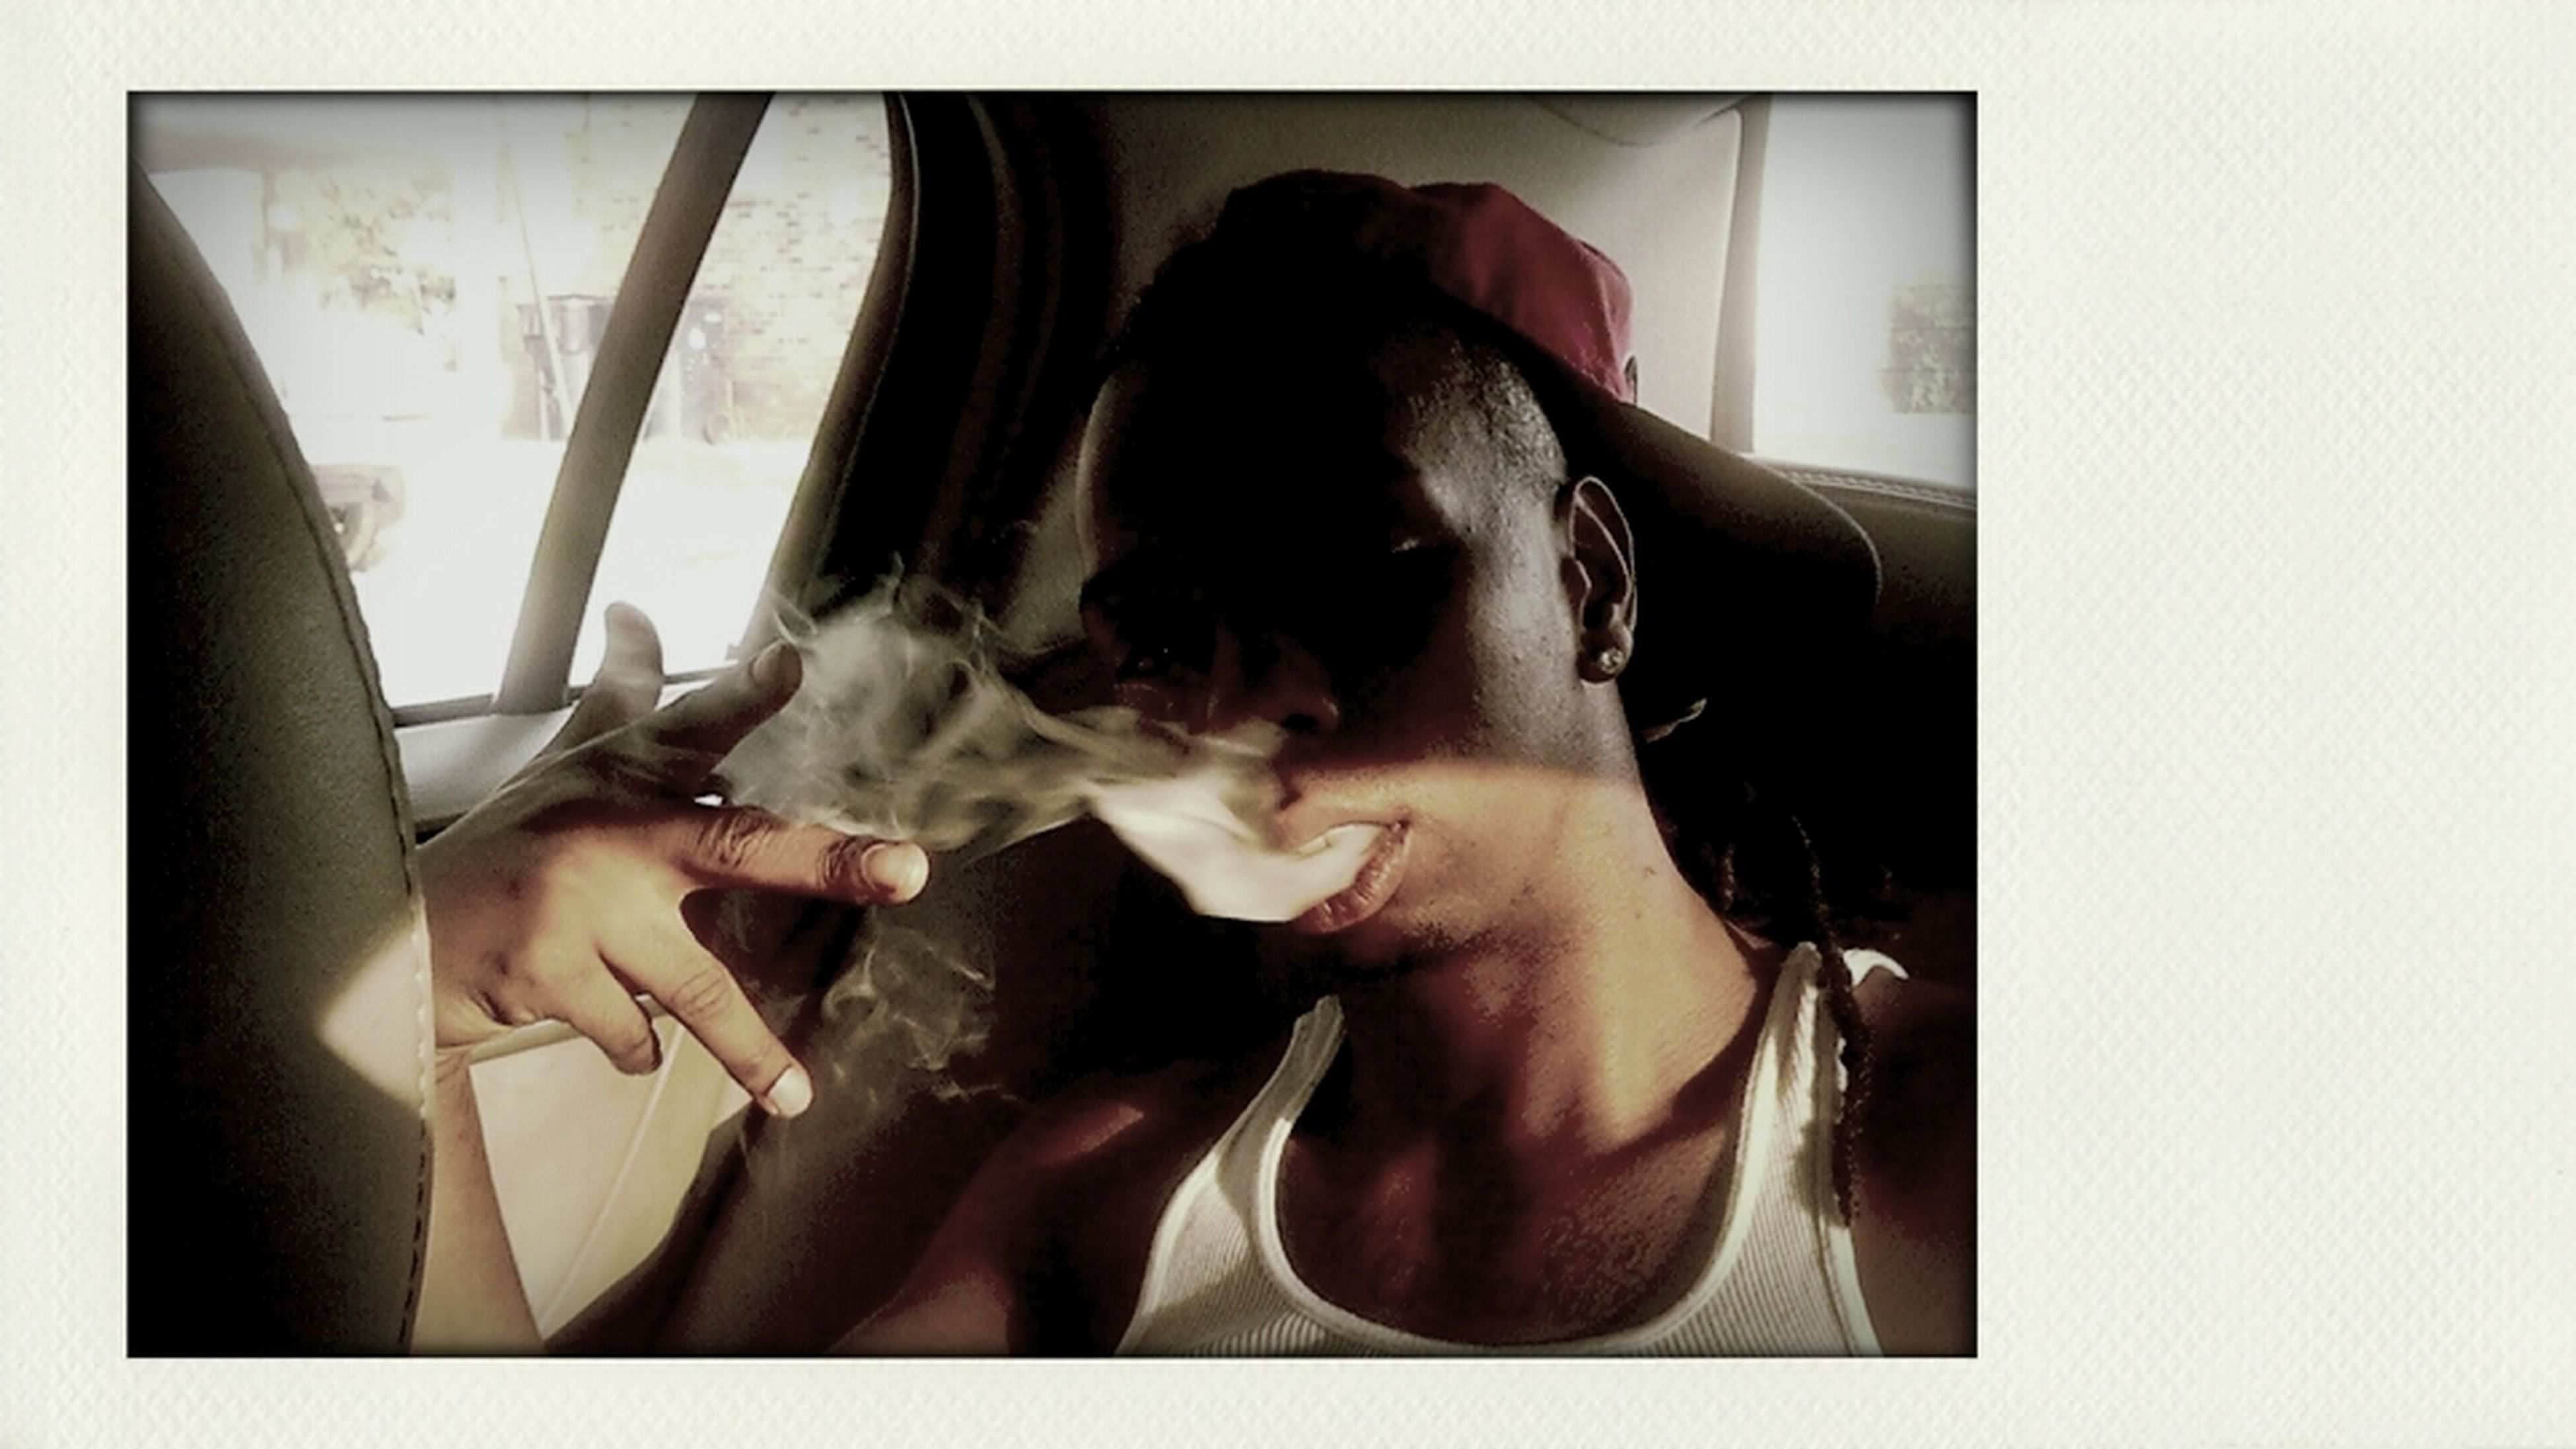 staying blowing